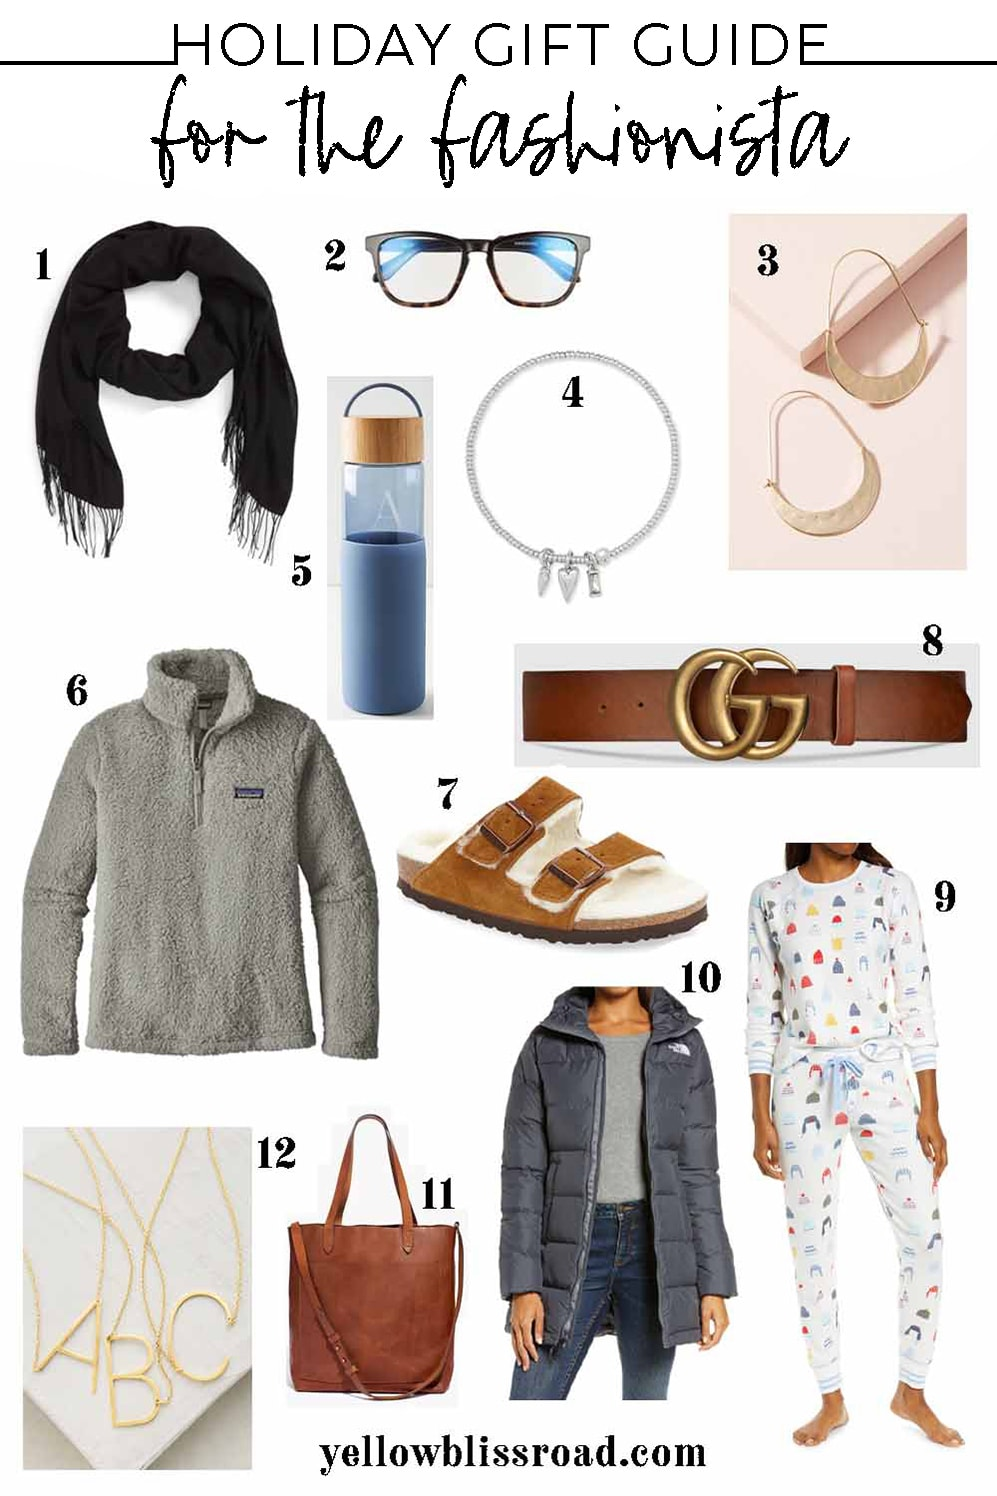 collage of gift ideas for fashion lovers